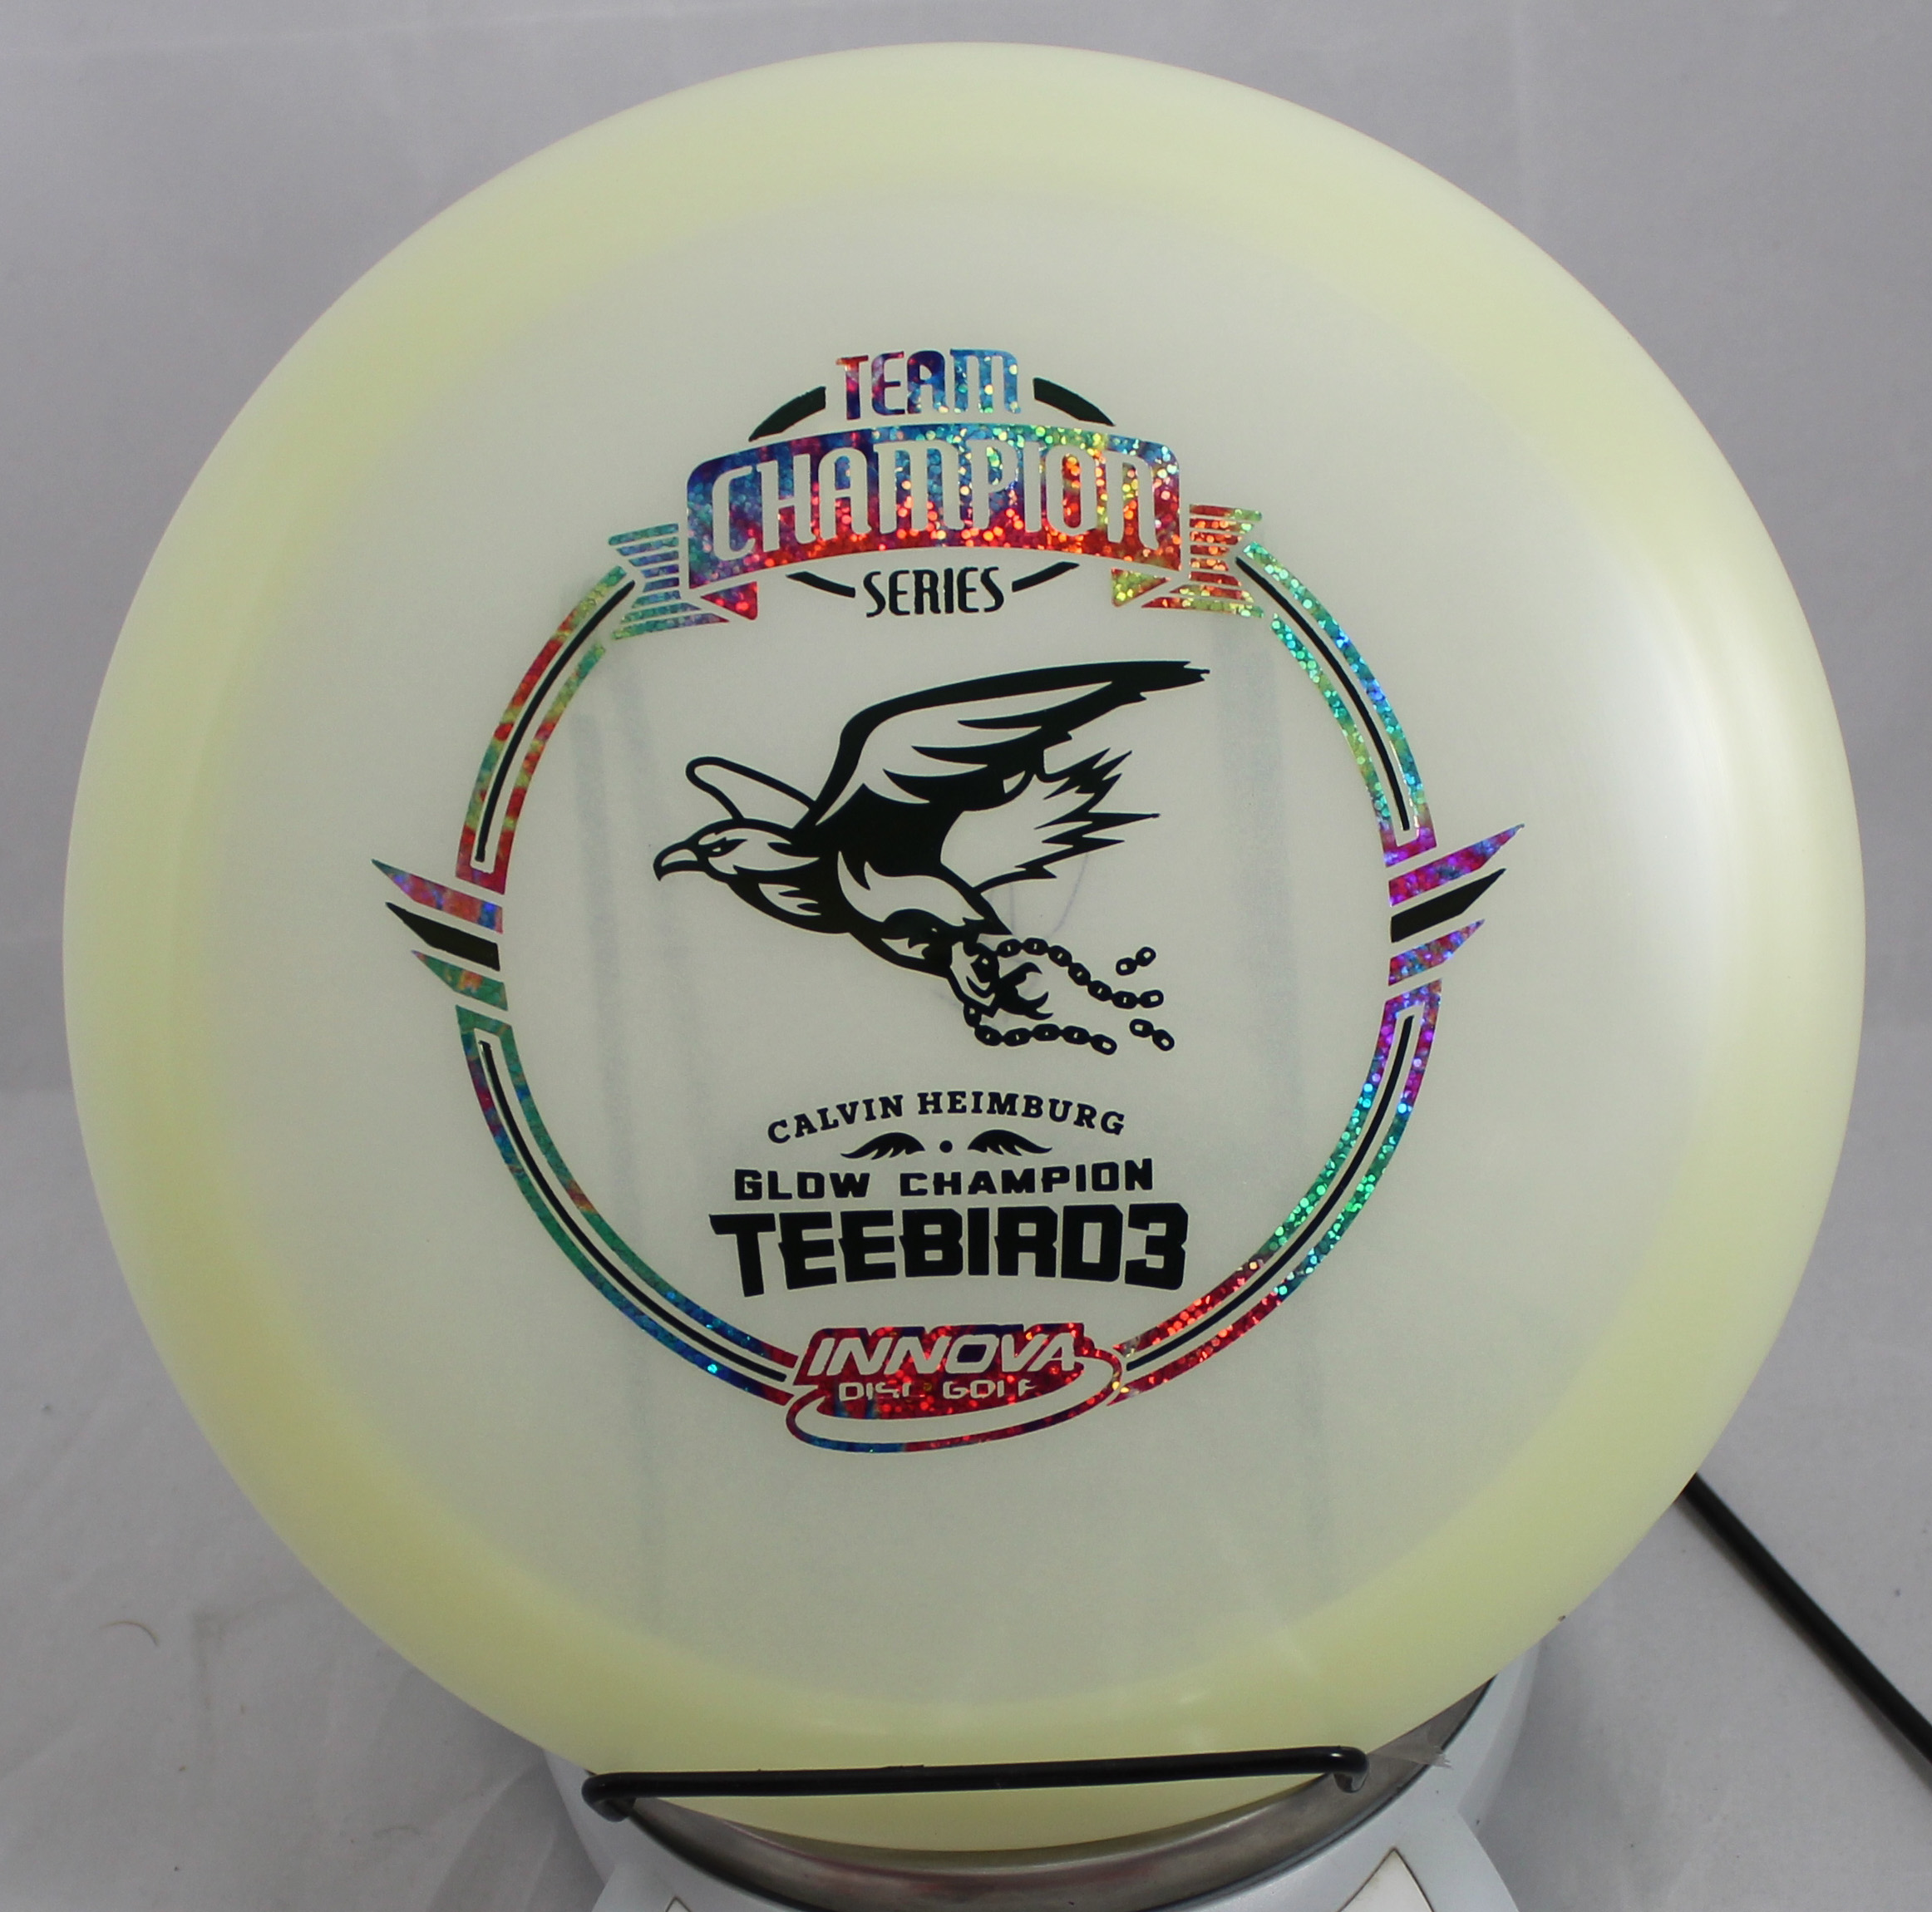 GlowChampion Teebird3, Heimburg